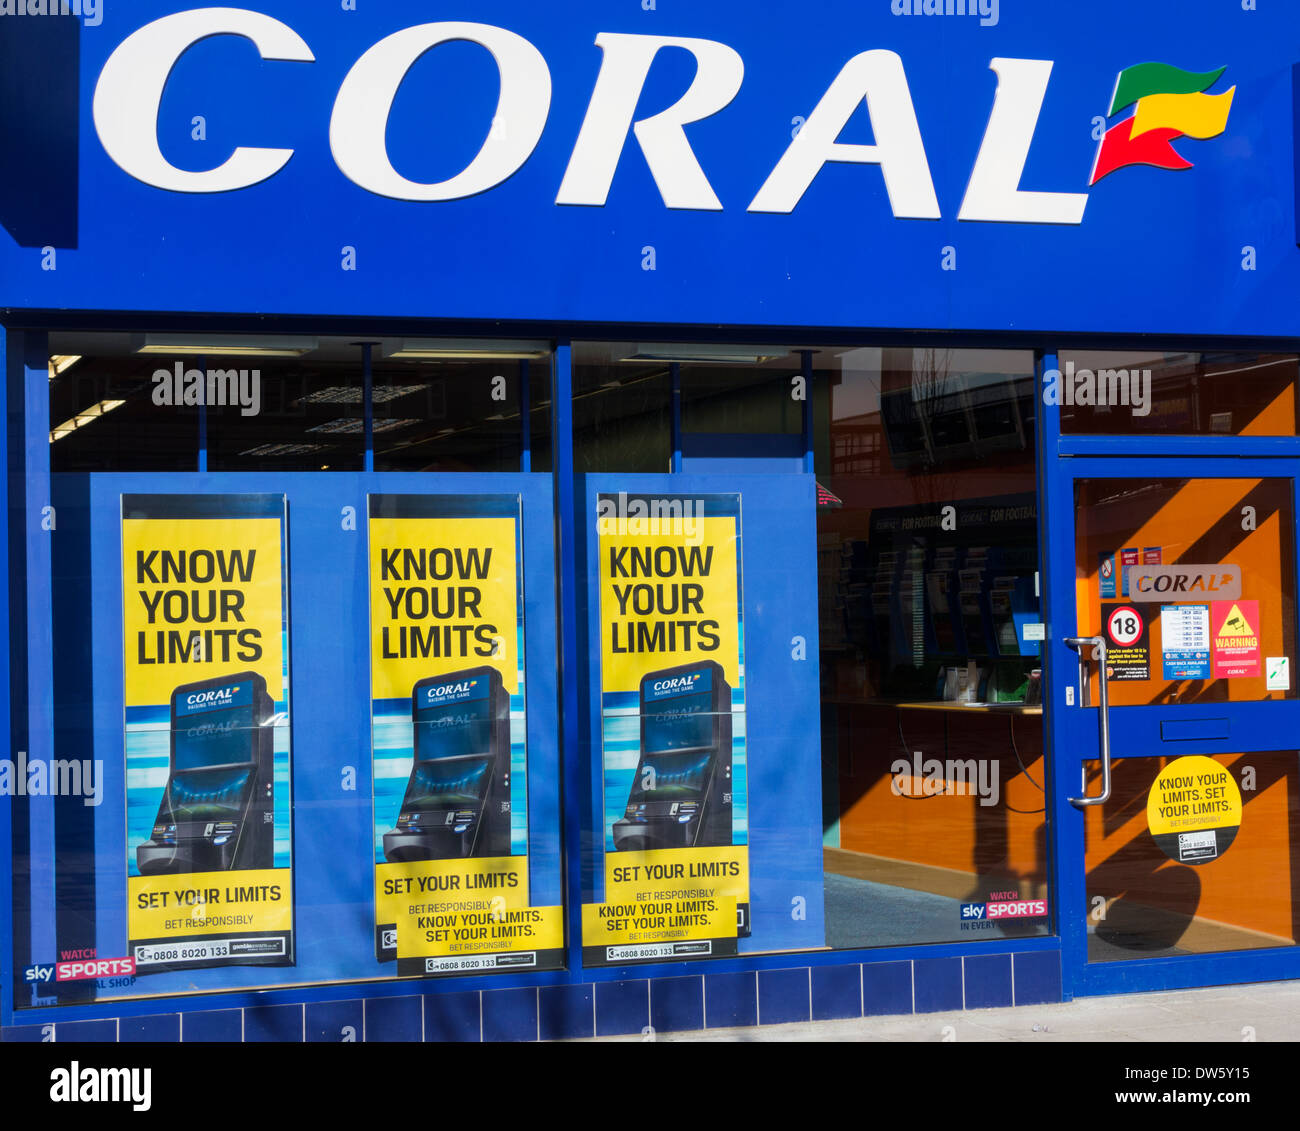 Gamble responsibly posters showing national gambling helpline number in Coral Bookmakers. - Stock Image